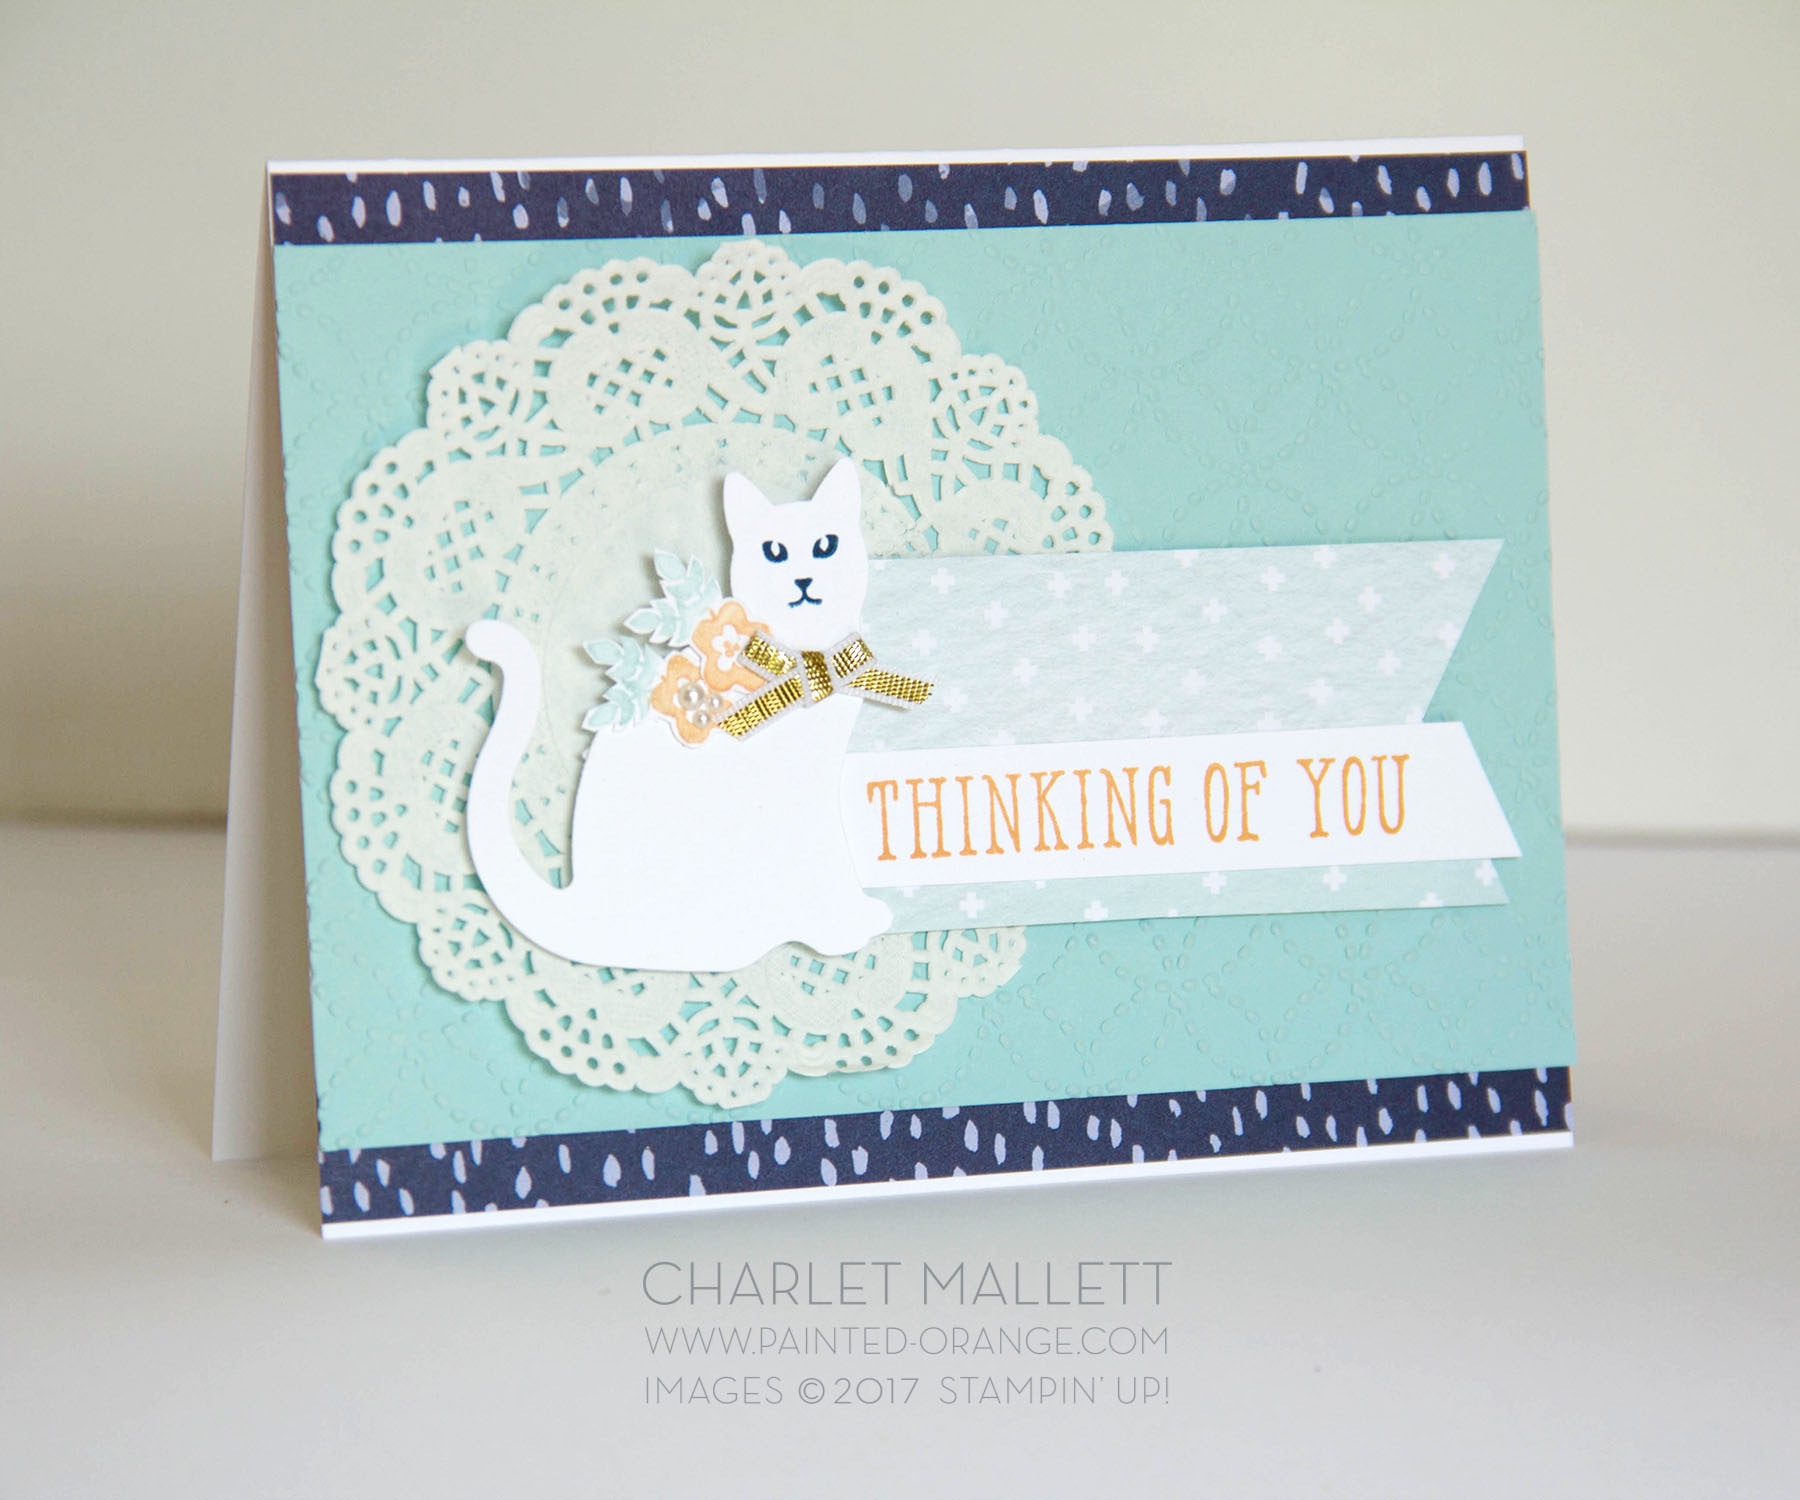 Thinking of You cat card - Window Shopping - Stampin' Up! Charlet Mallett